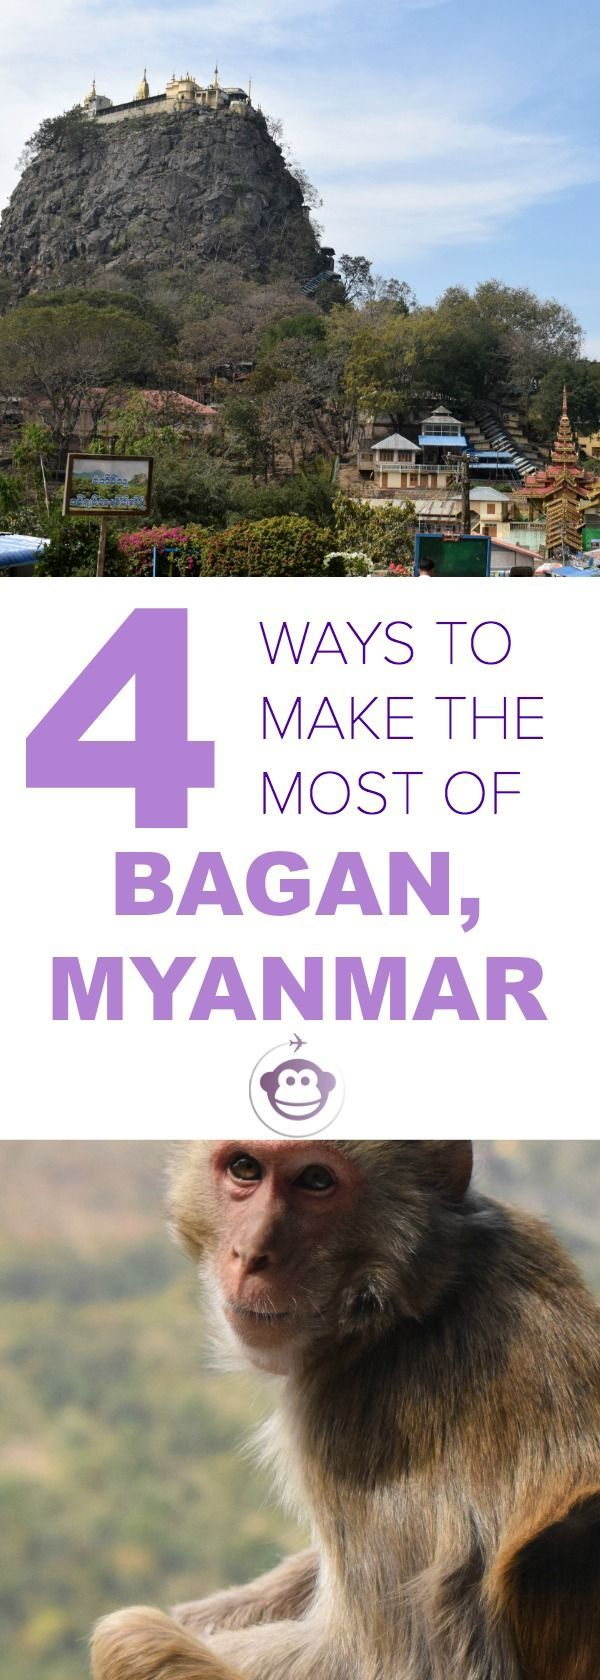 Four Ways To Make The Most of Bagan in Myanmar | Destination Guide | Myanmar | Travel Inspiration | Travel Tips | Exploring Myanmar | Bagan | Travel Blogs |